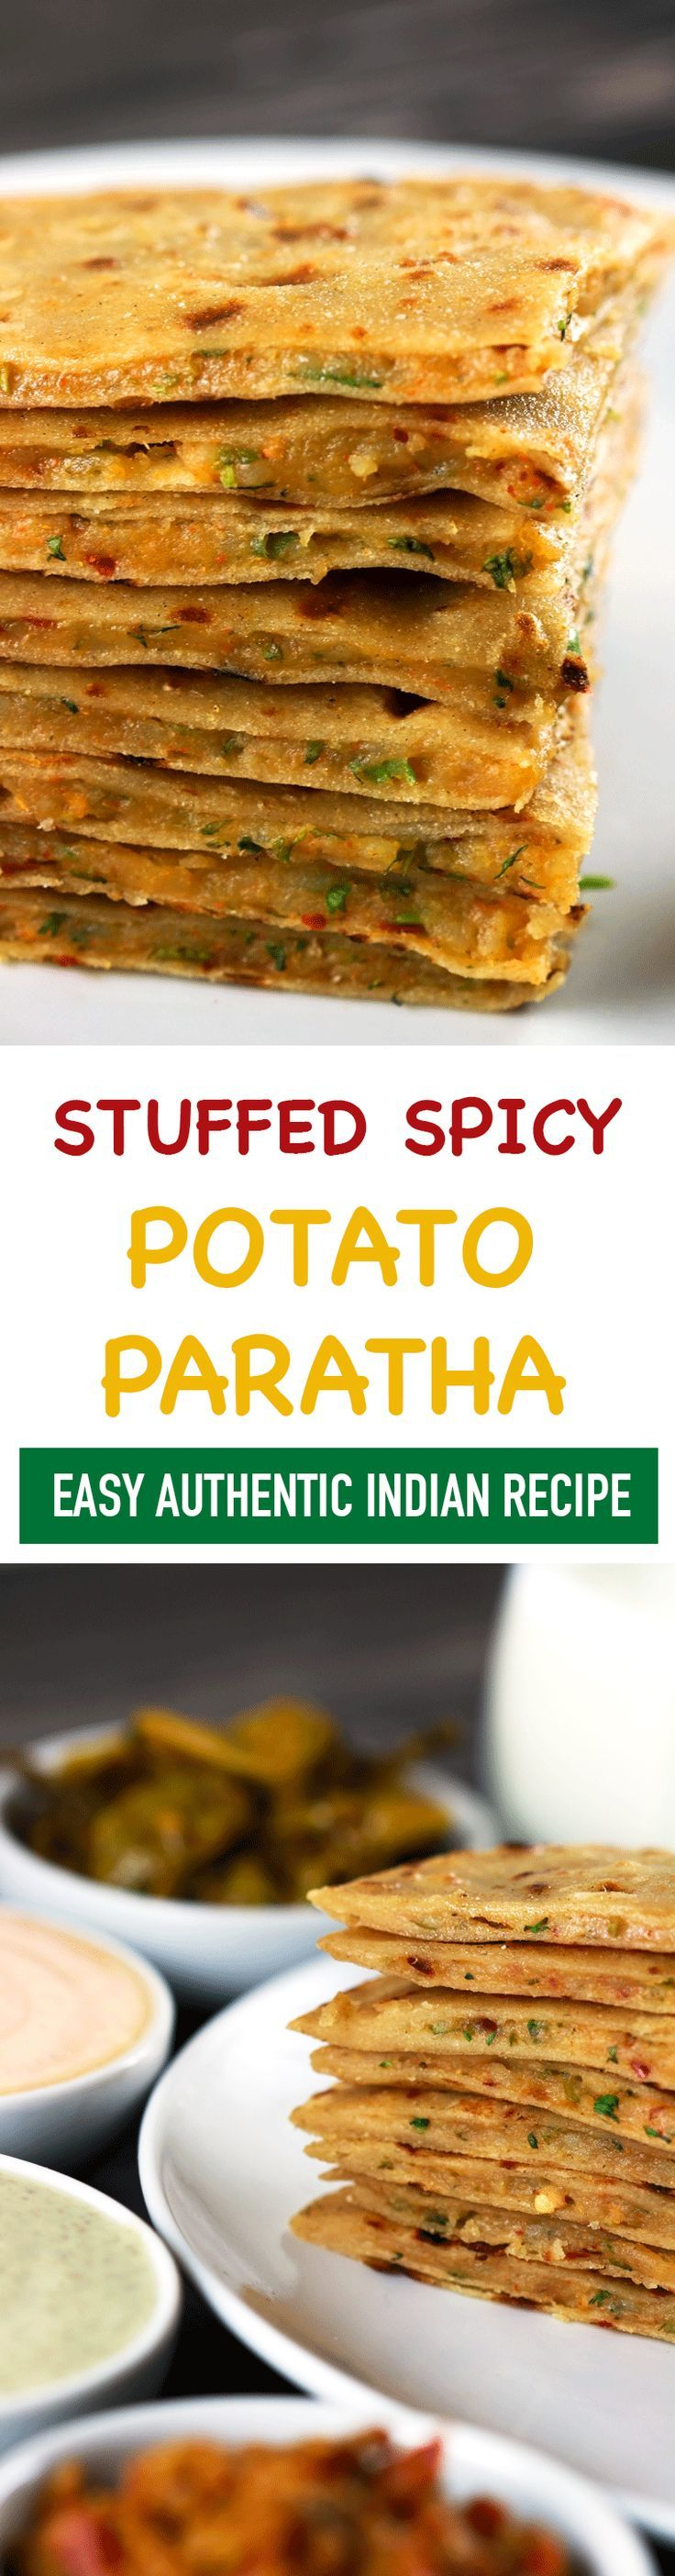 These Indian Stuffed Potato Parathas are perfect when you want to have delicious classic Indian food, but don't want to make anything too complicated! Each bite is bursting of delicious flavors that you won't be able to forget! | http://ScrambledChefs.com